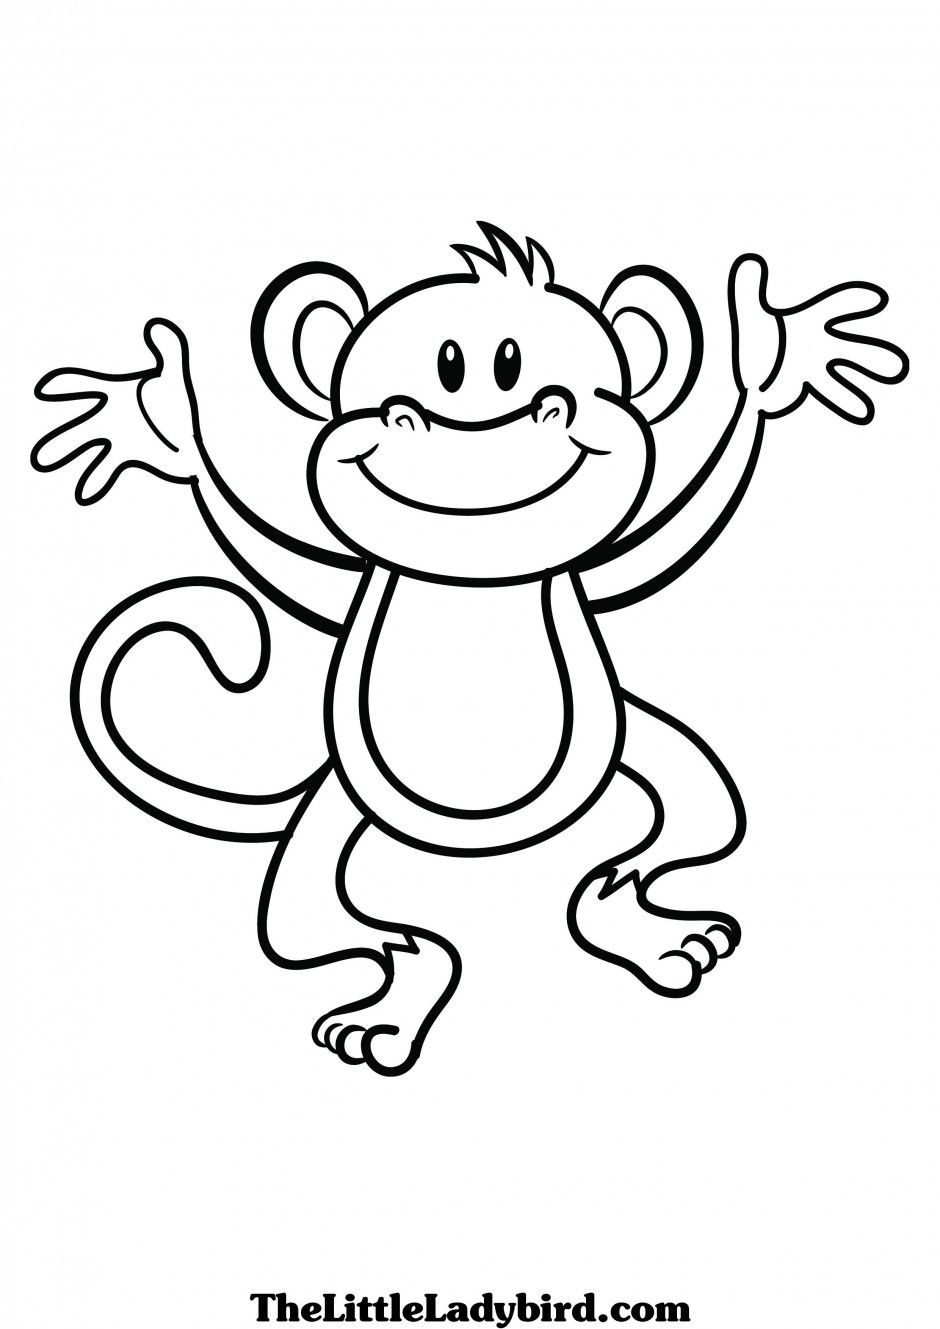 Draw clipart monkey. Cute clip art black